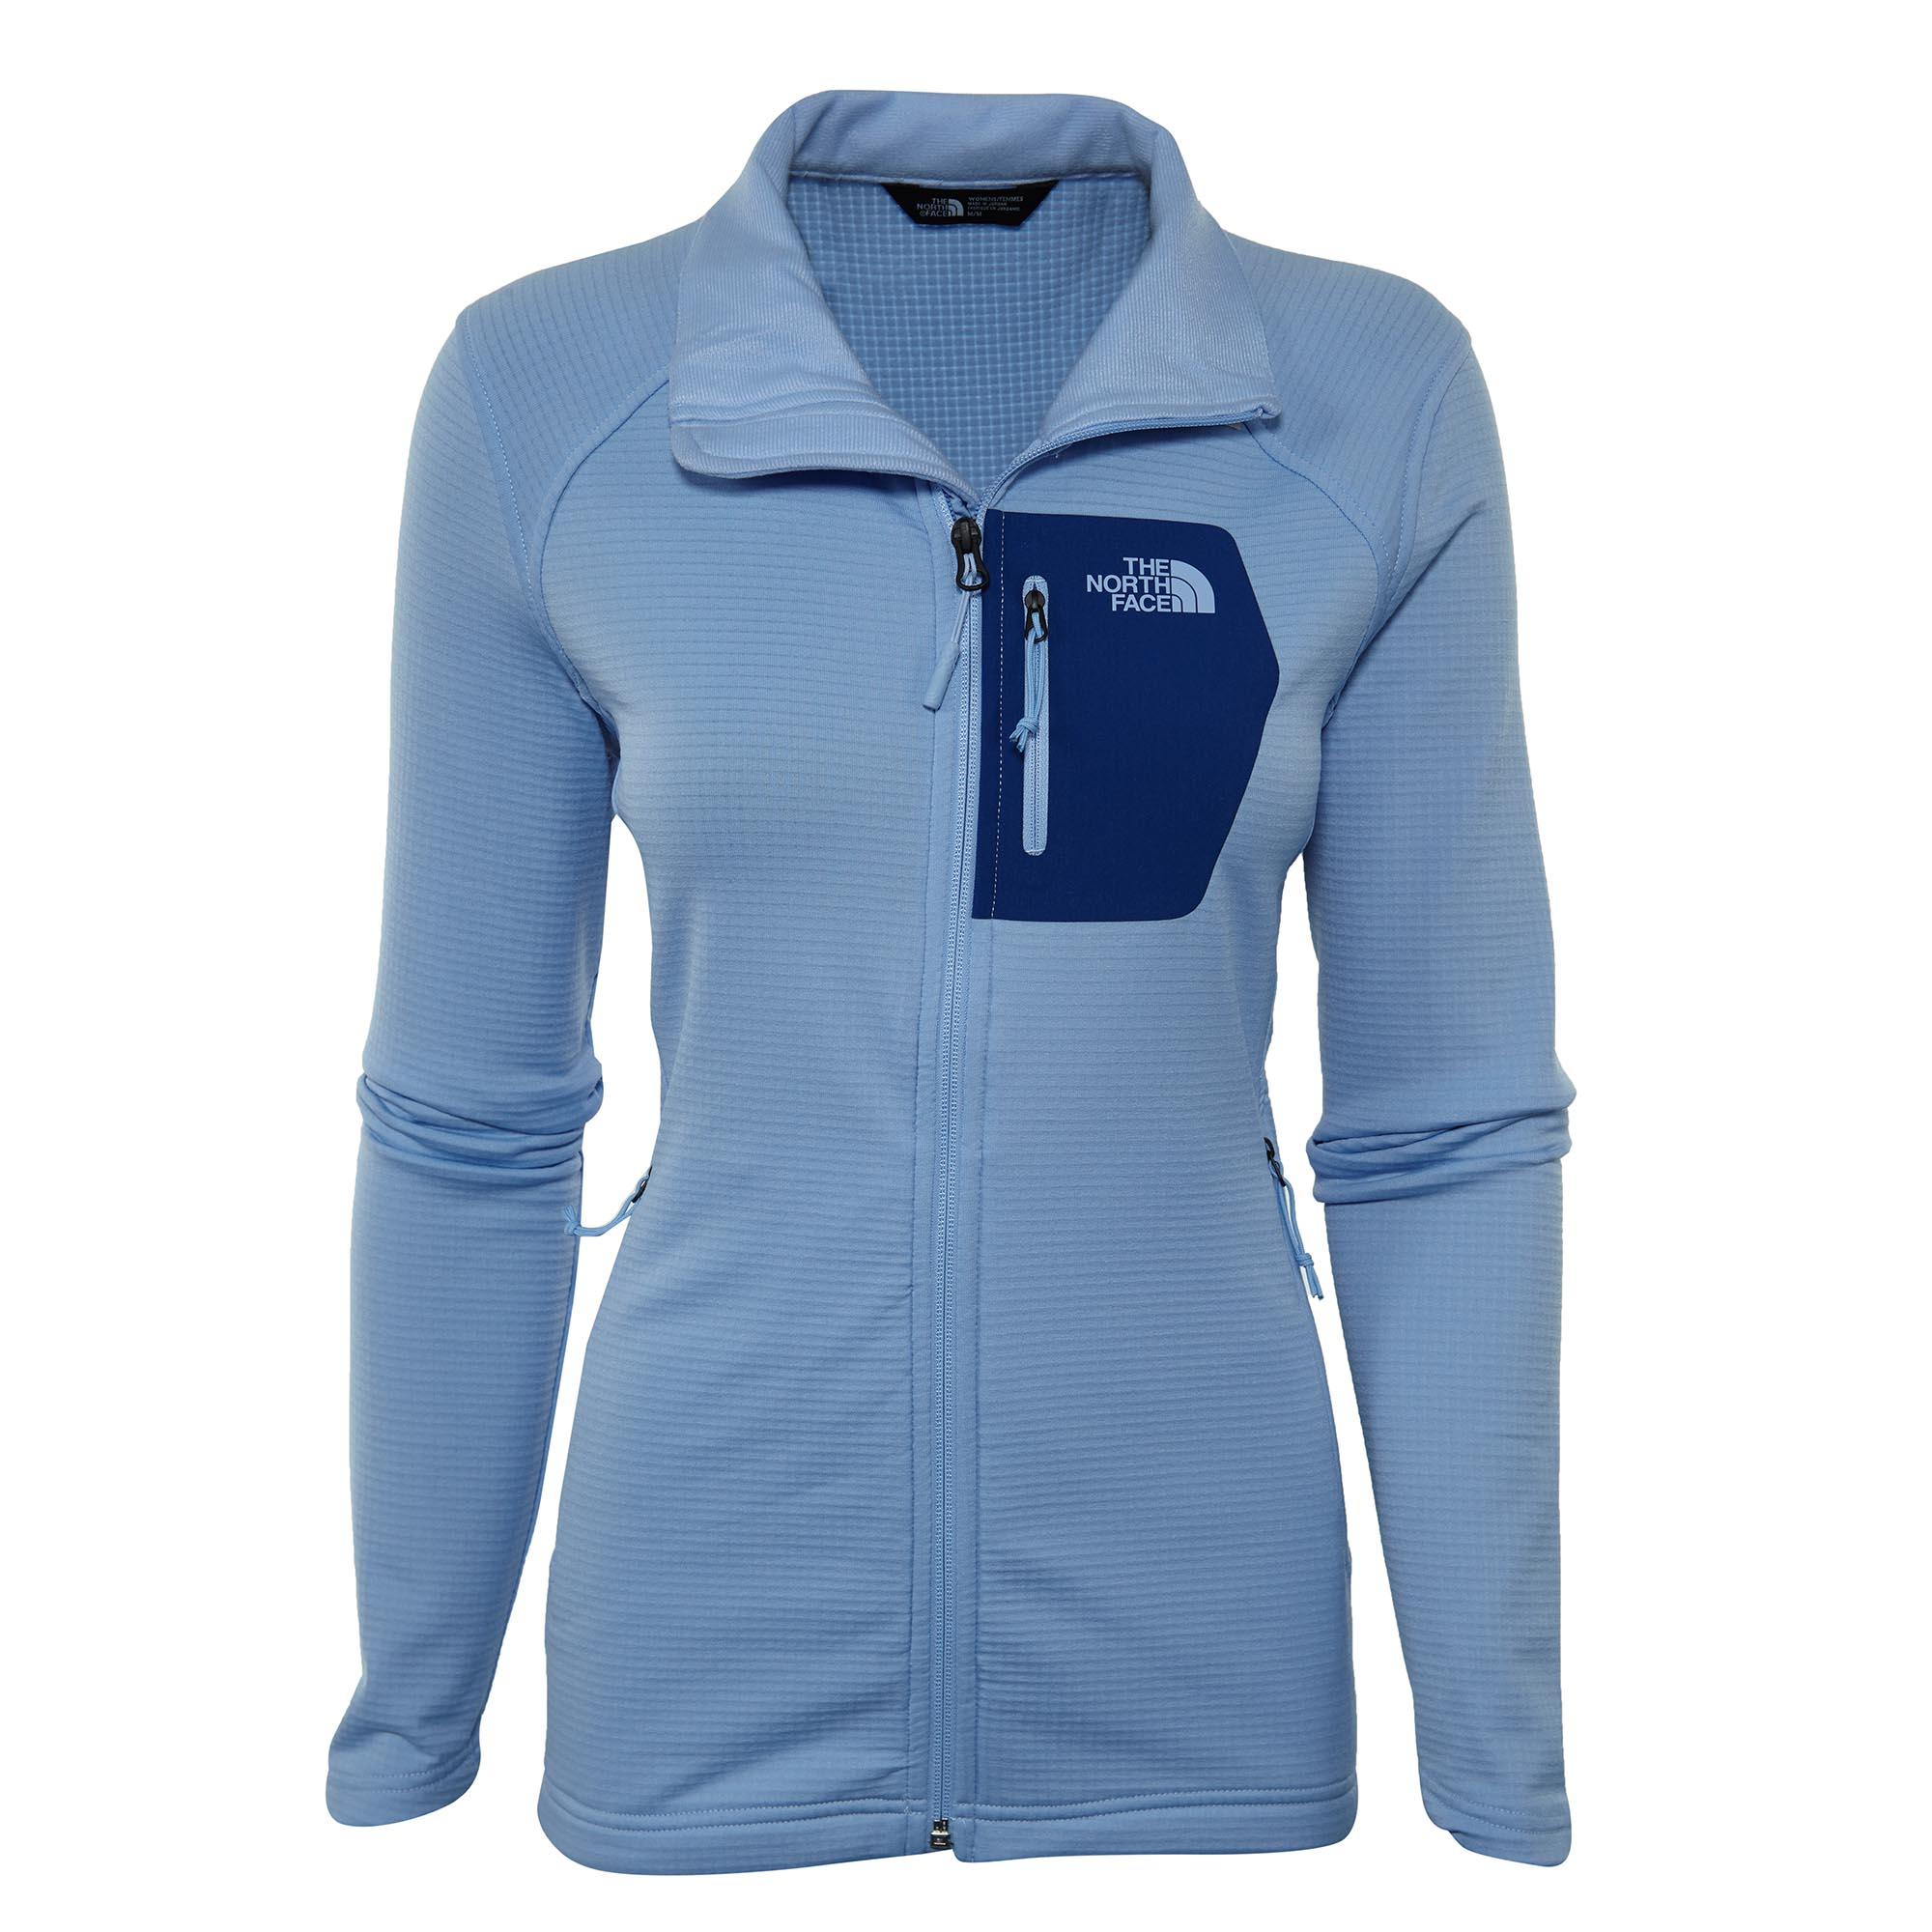 b47f6ce4cef71 Details about The North Face Womens Borod Full Zip Fleece Jacket A3C8A-N3L